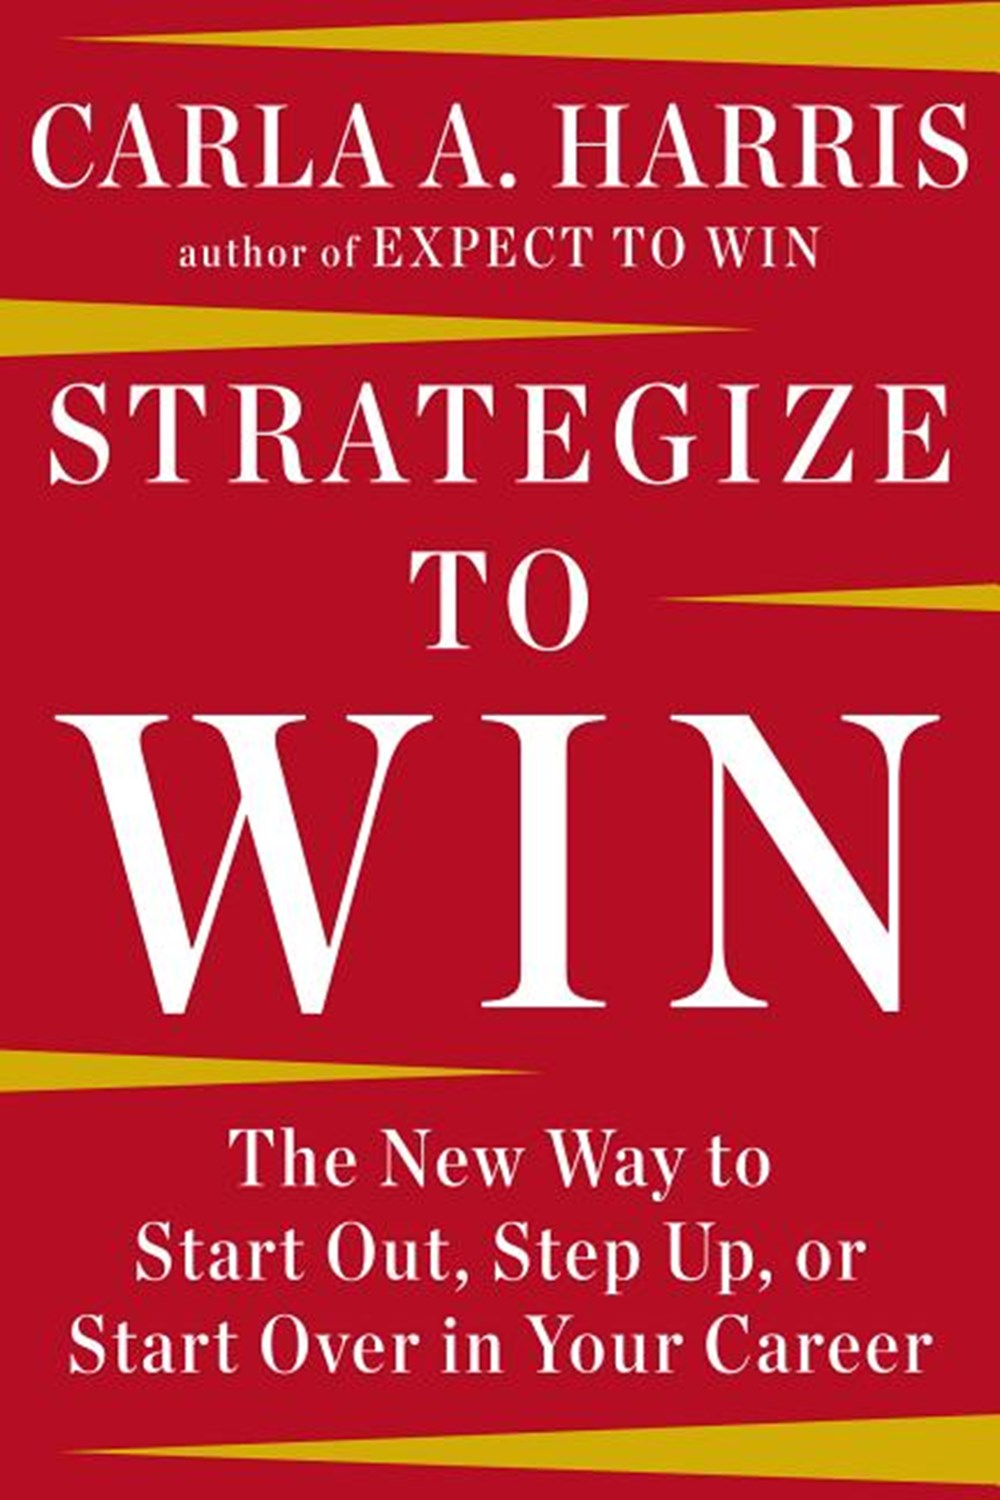 Strategize to Win The New Way to Start Out, Step Up, or Start Over in Your Career